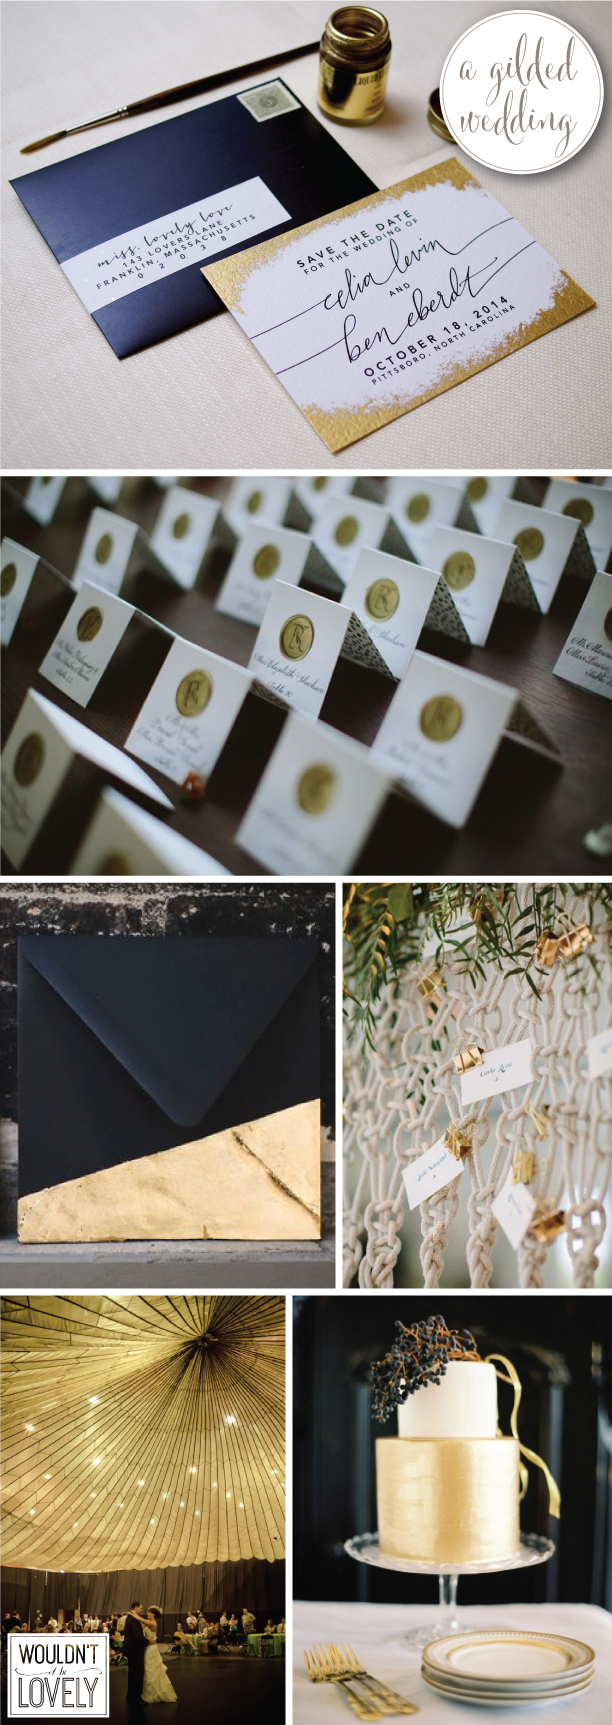 GILDED gold and white WEDDING inspiration